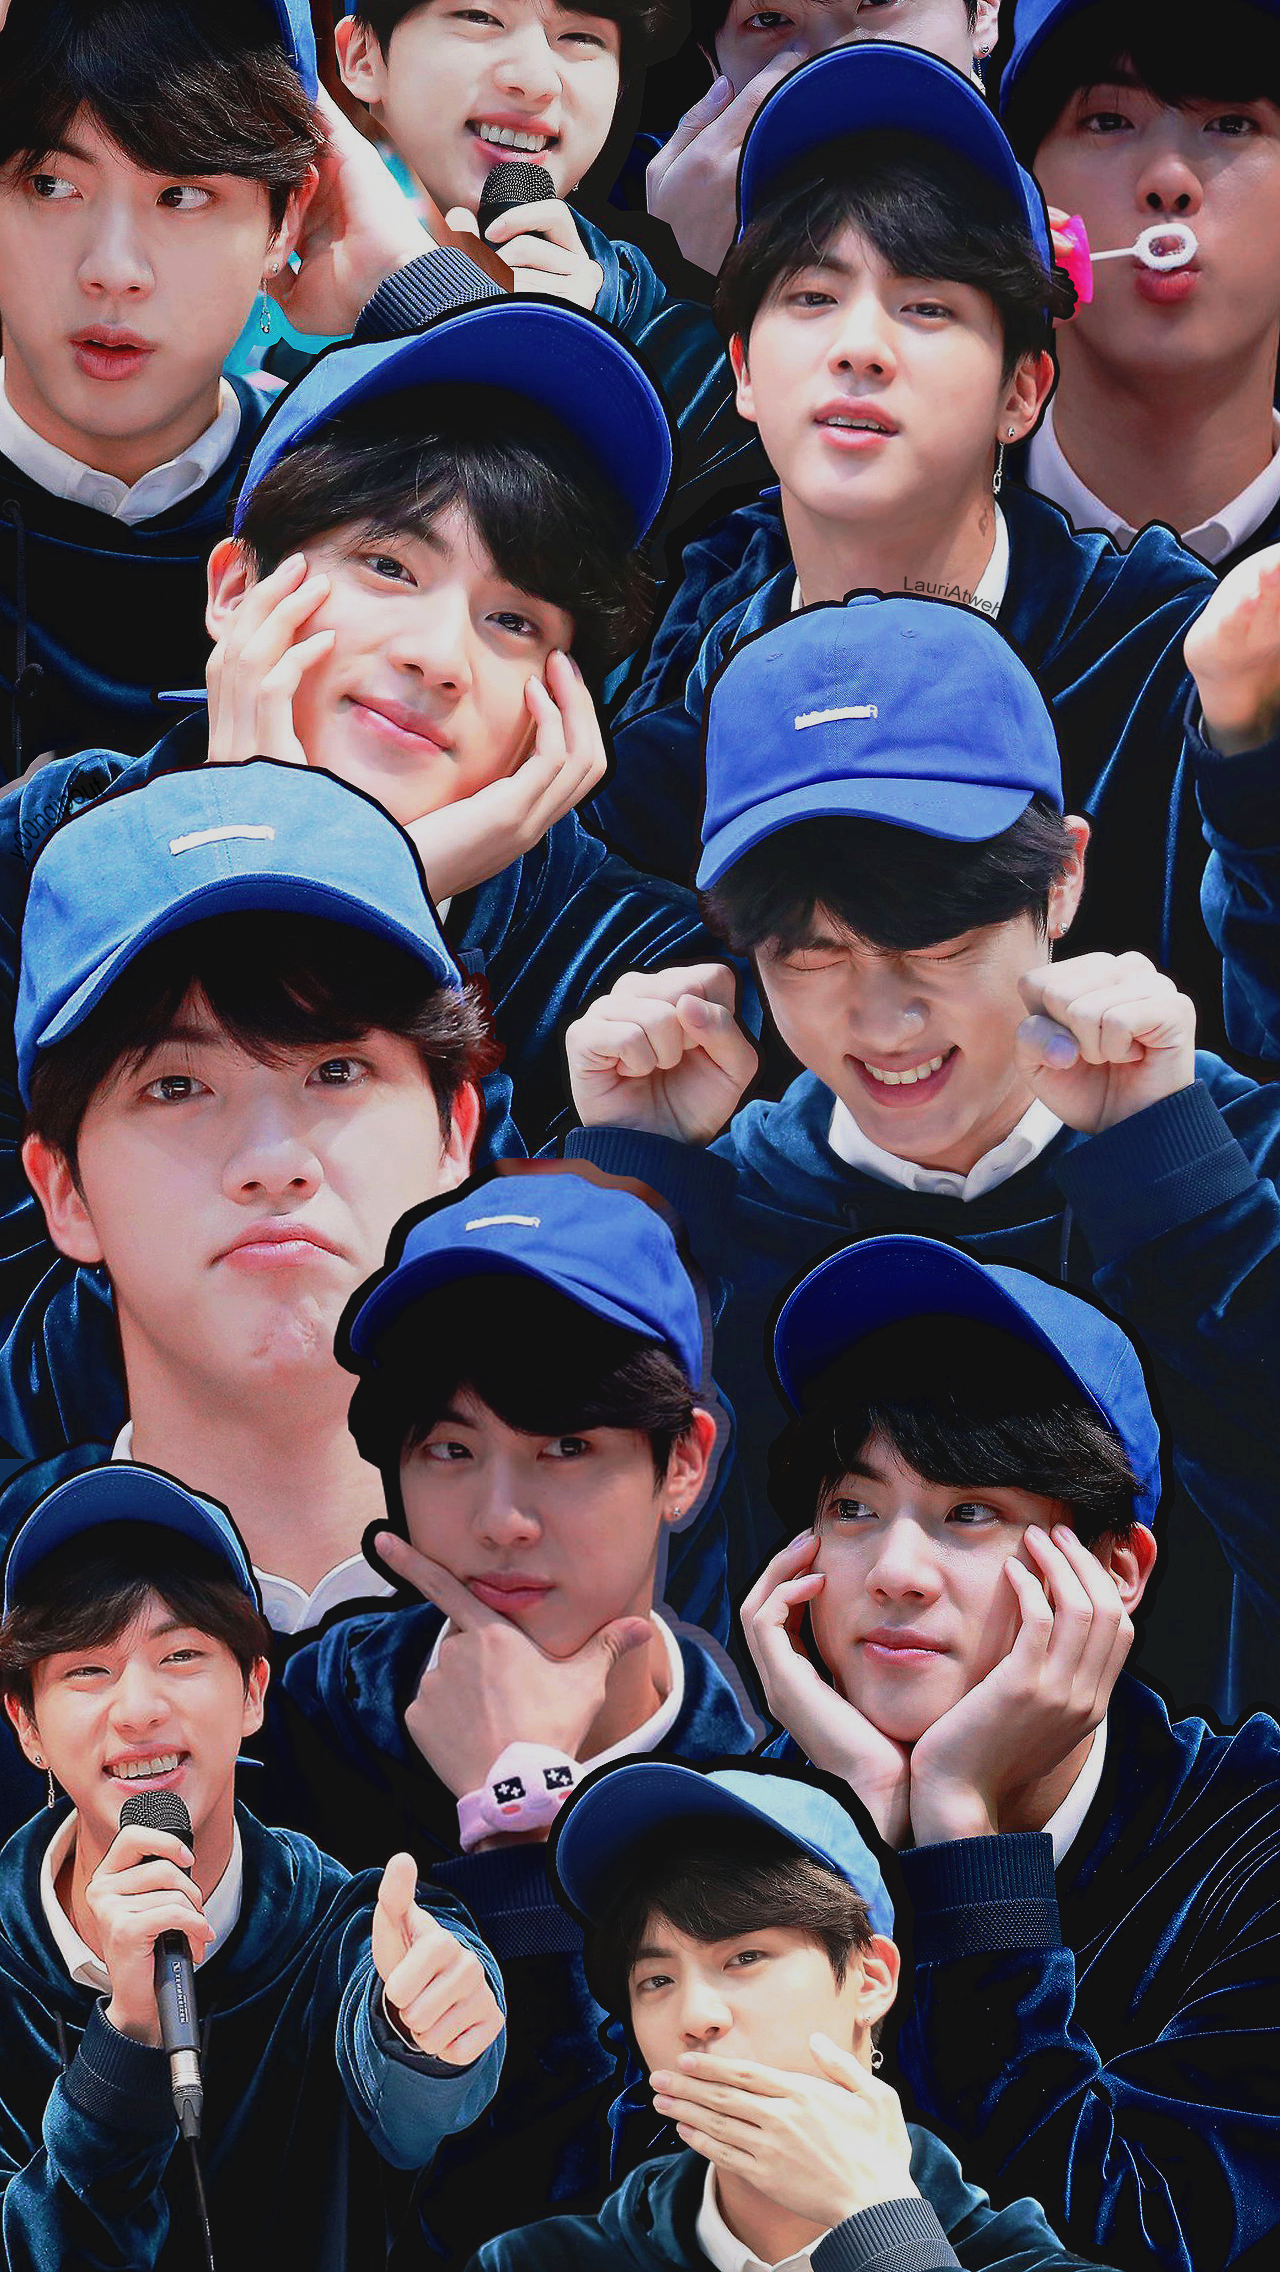 Bts kim seokjin jin lockscreen collage tumblr bangtan #kimseokjin